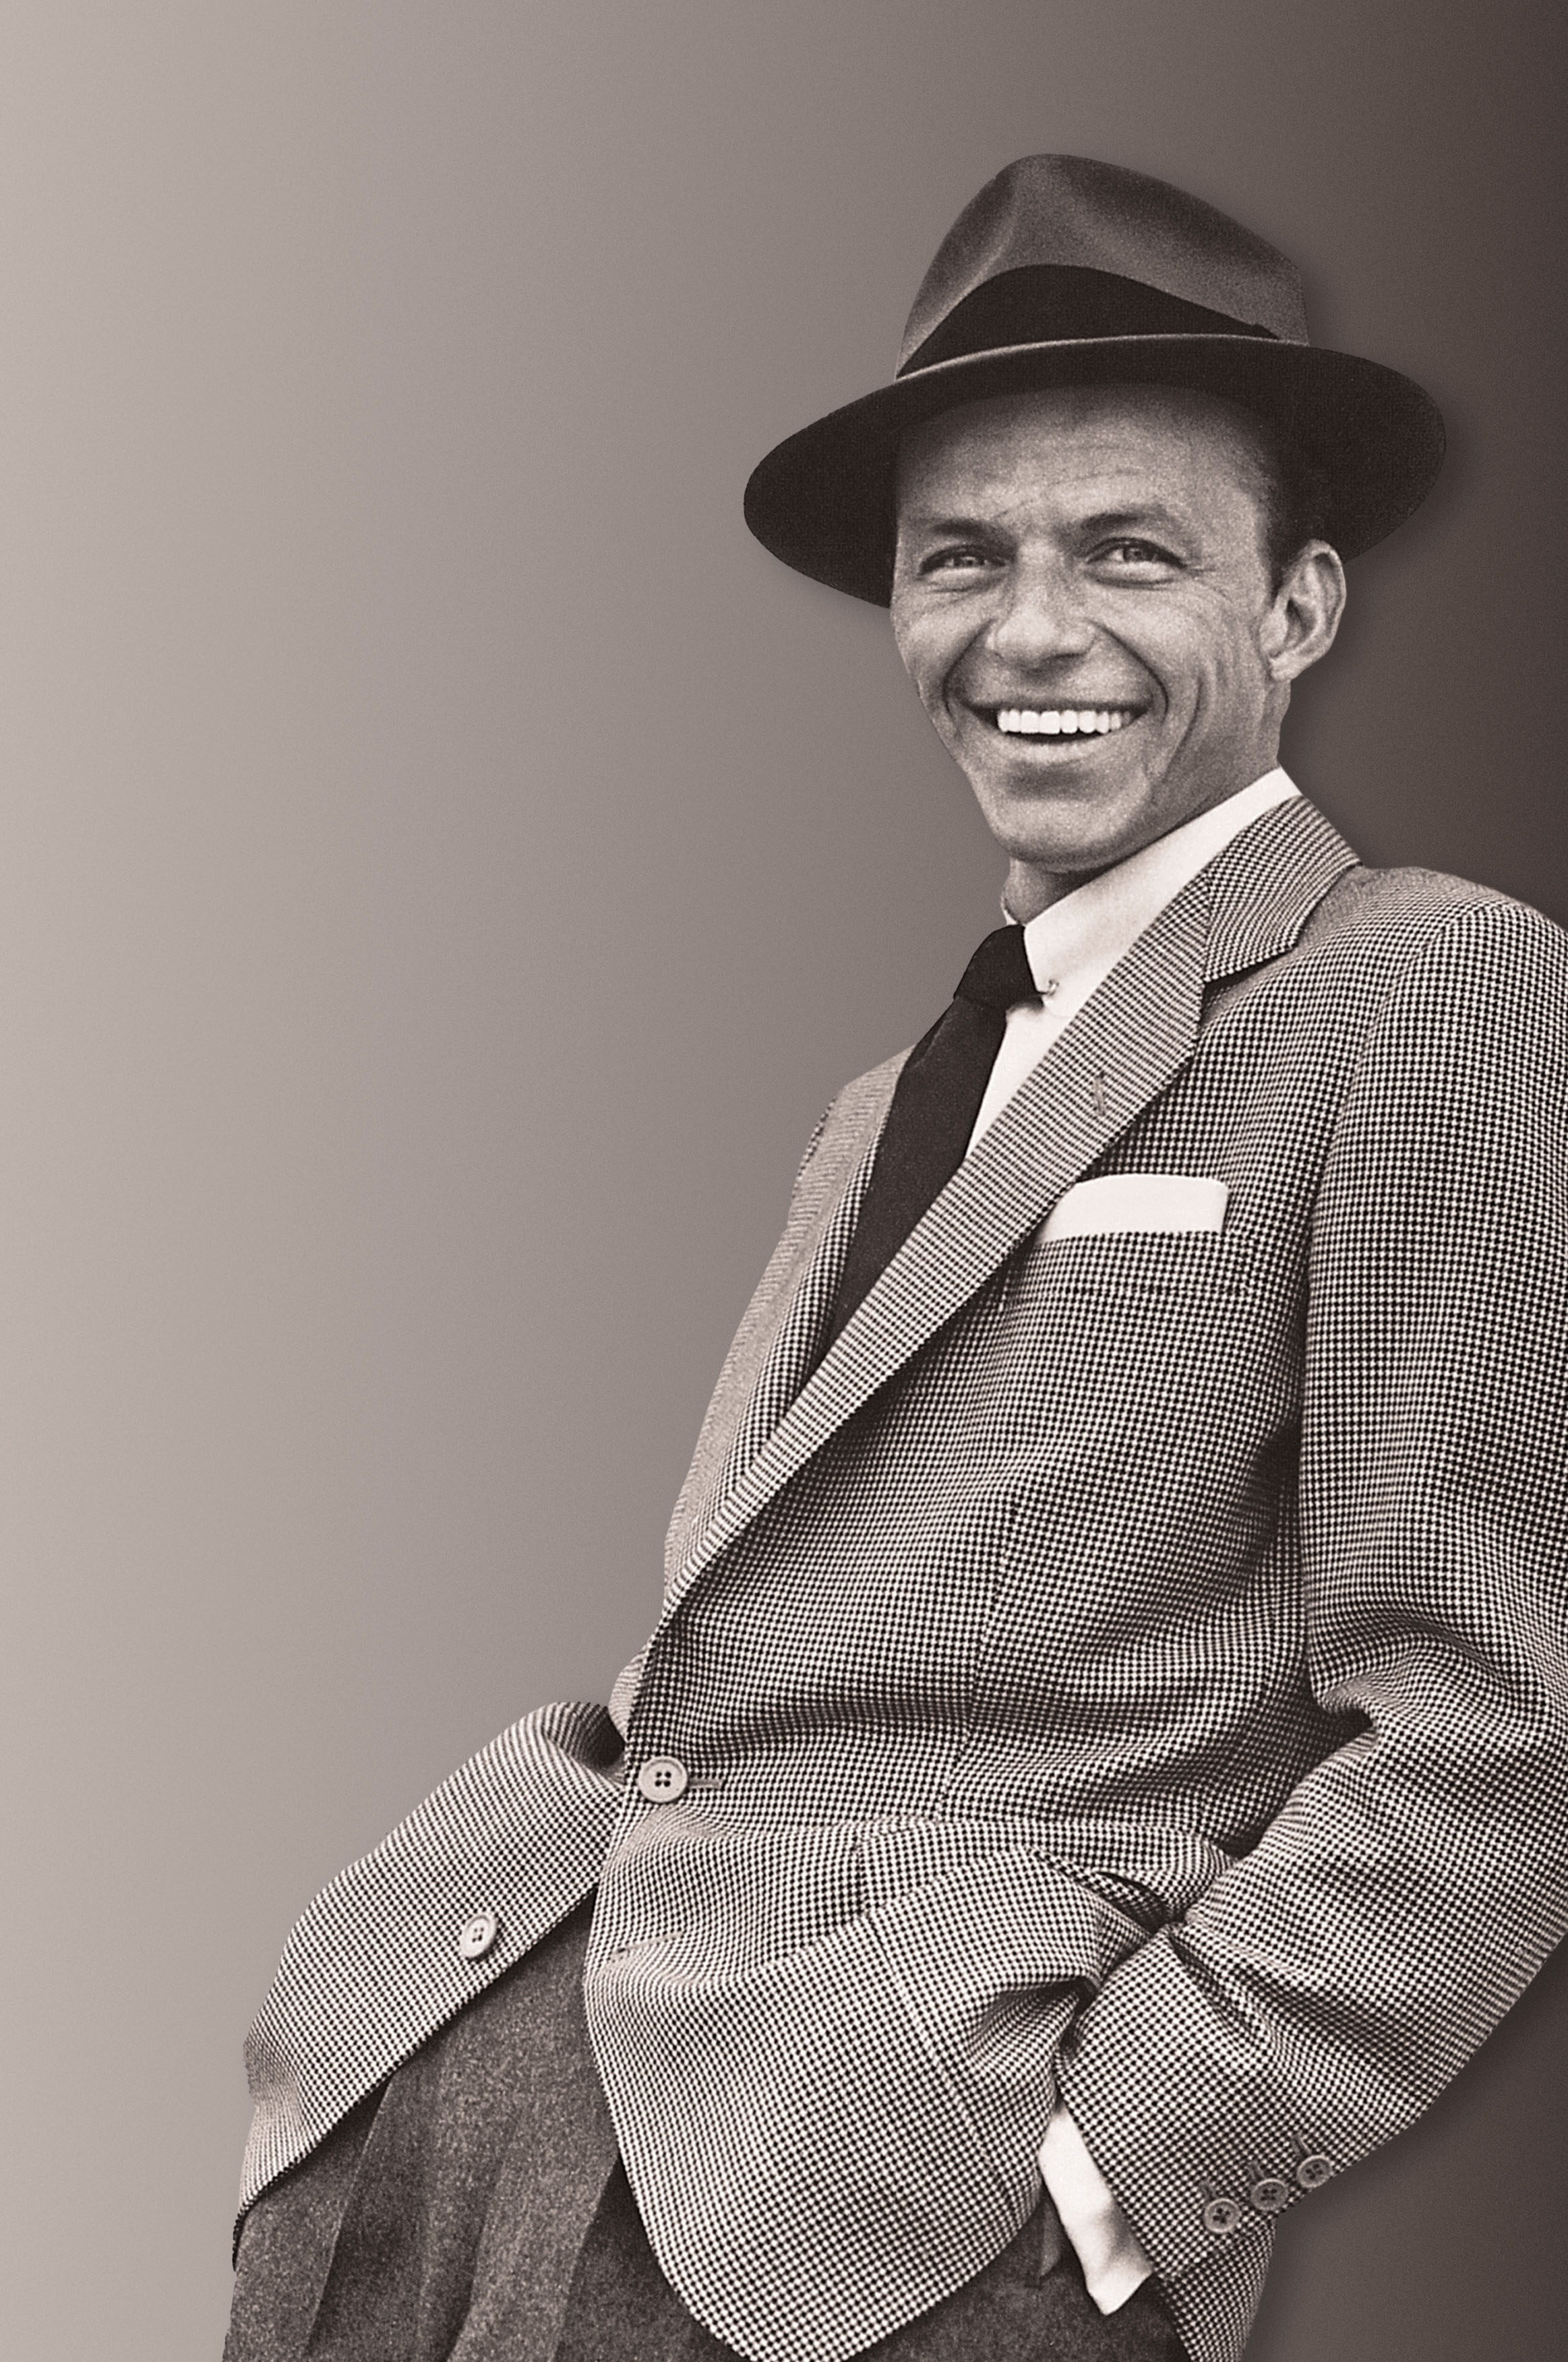 News And Entertainment Frank Sinatra Jan 05 2013 17 20 33